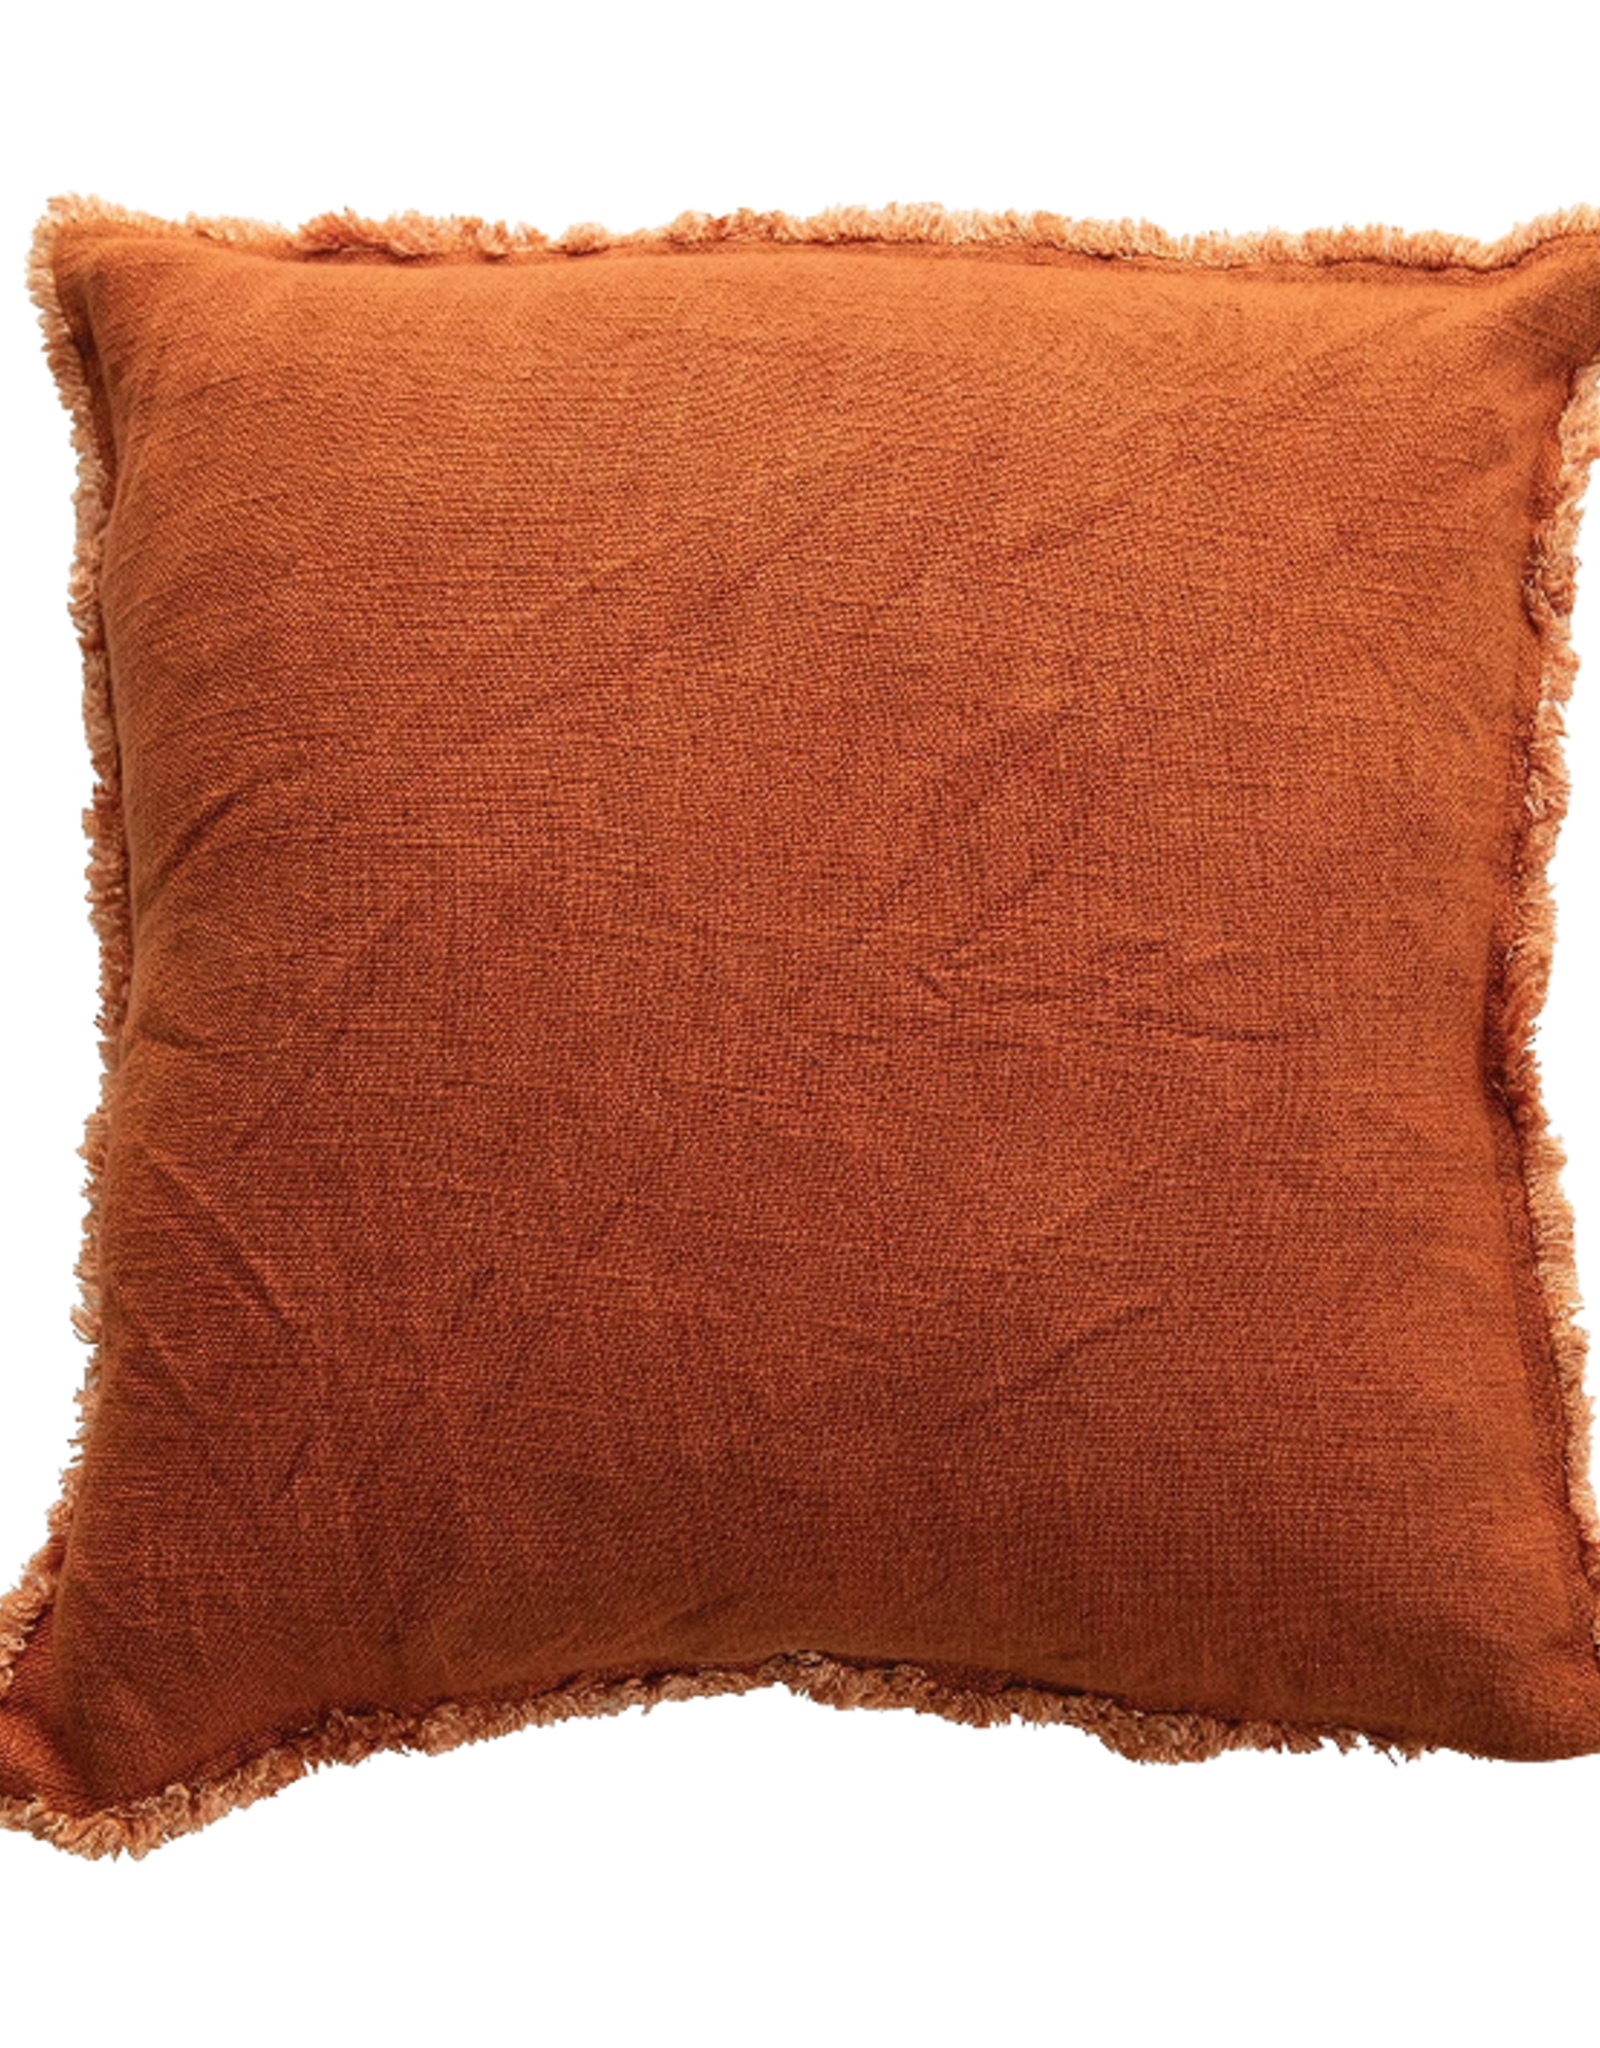 """PILLOW SQUARE RUST RED LINEN WITH FRINGE 18X18"""""""